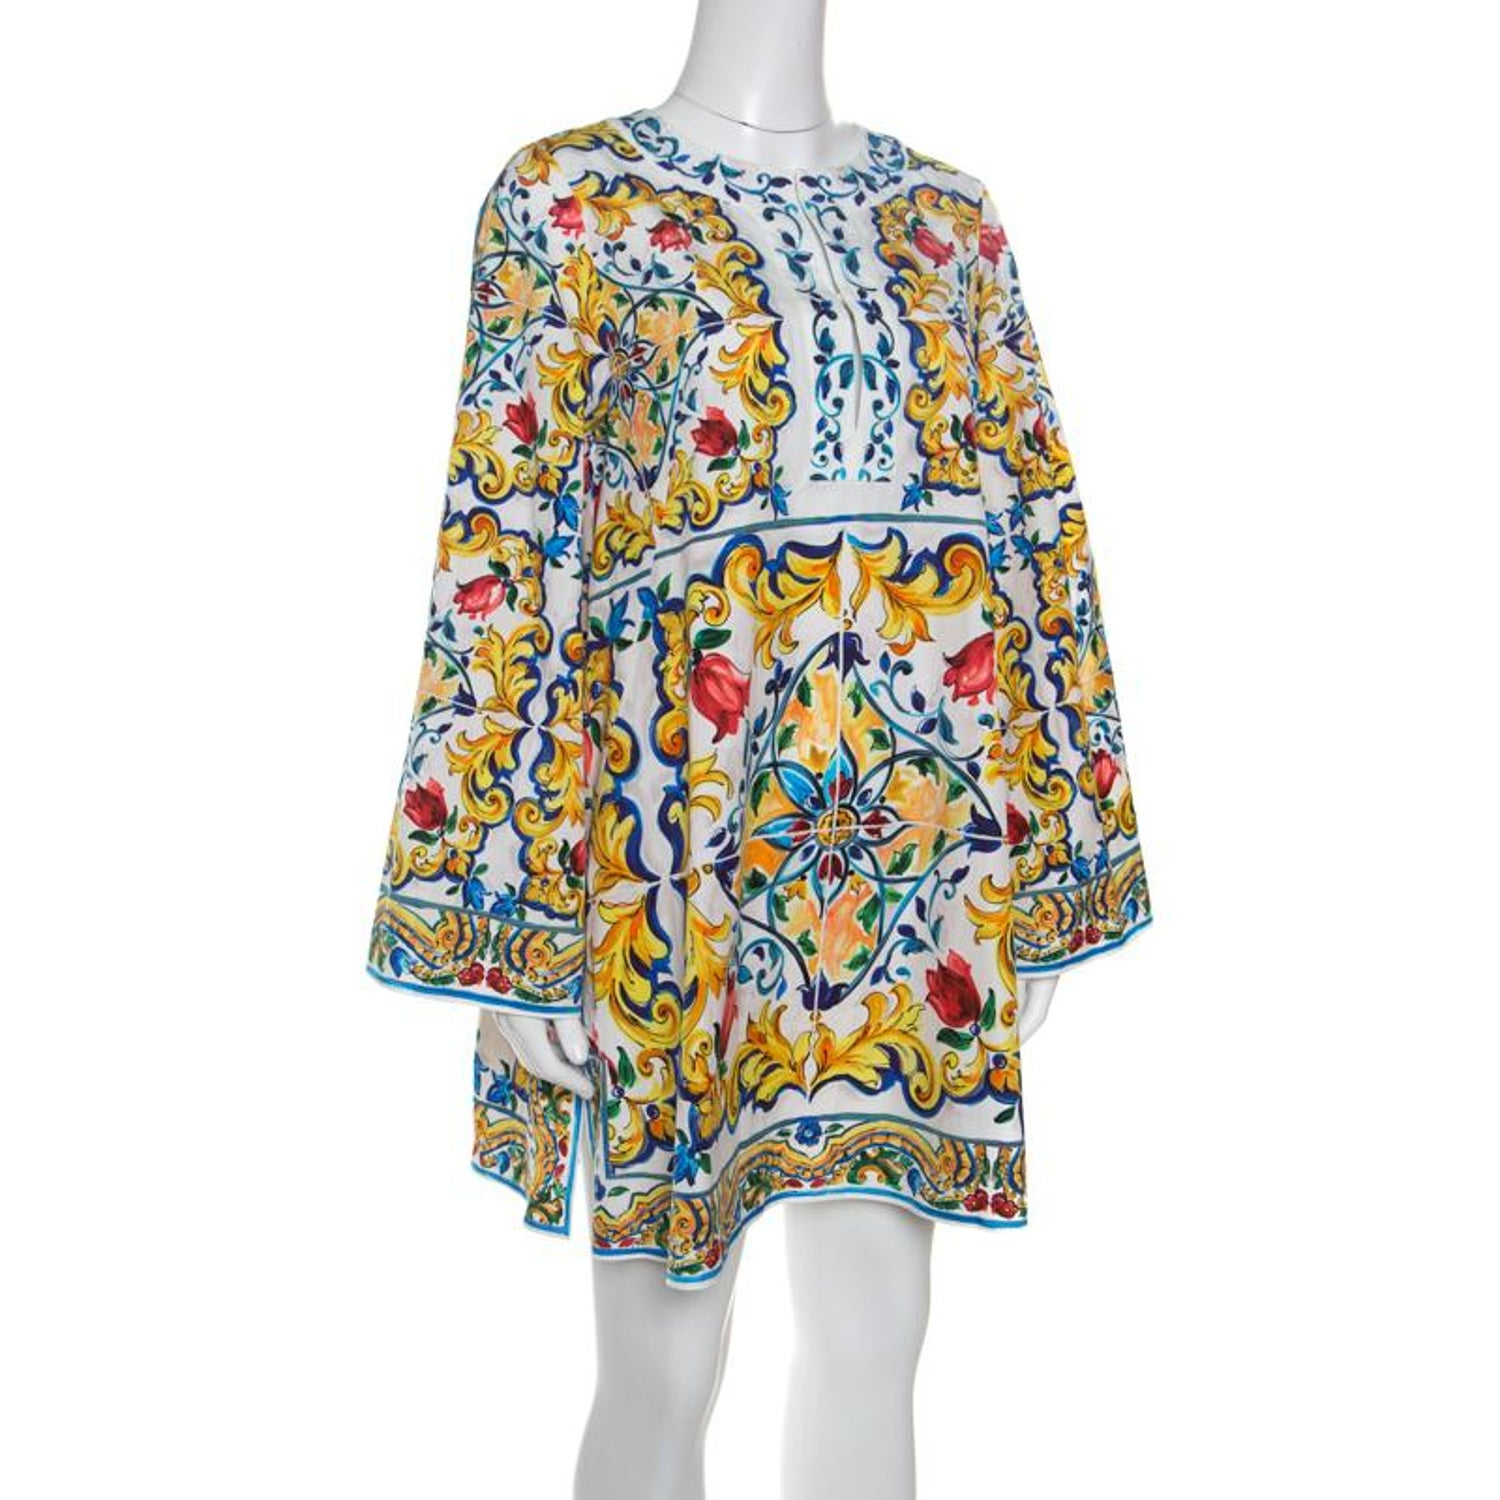 2b208c70f9 Dolce and Gabbana Majolica Printed Cotton Bell Sleeve Kaftan Dress S For  Sale at 1stdibs